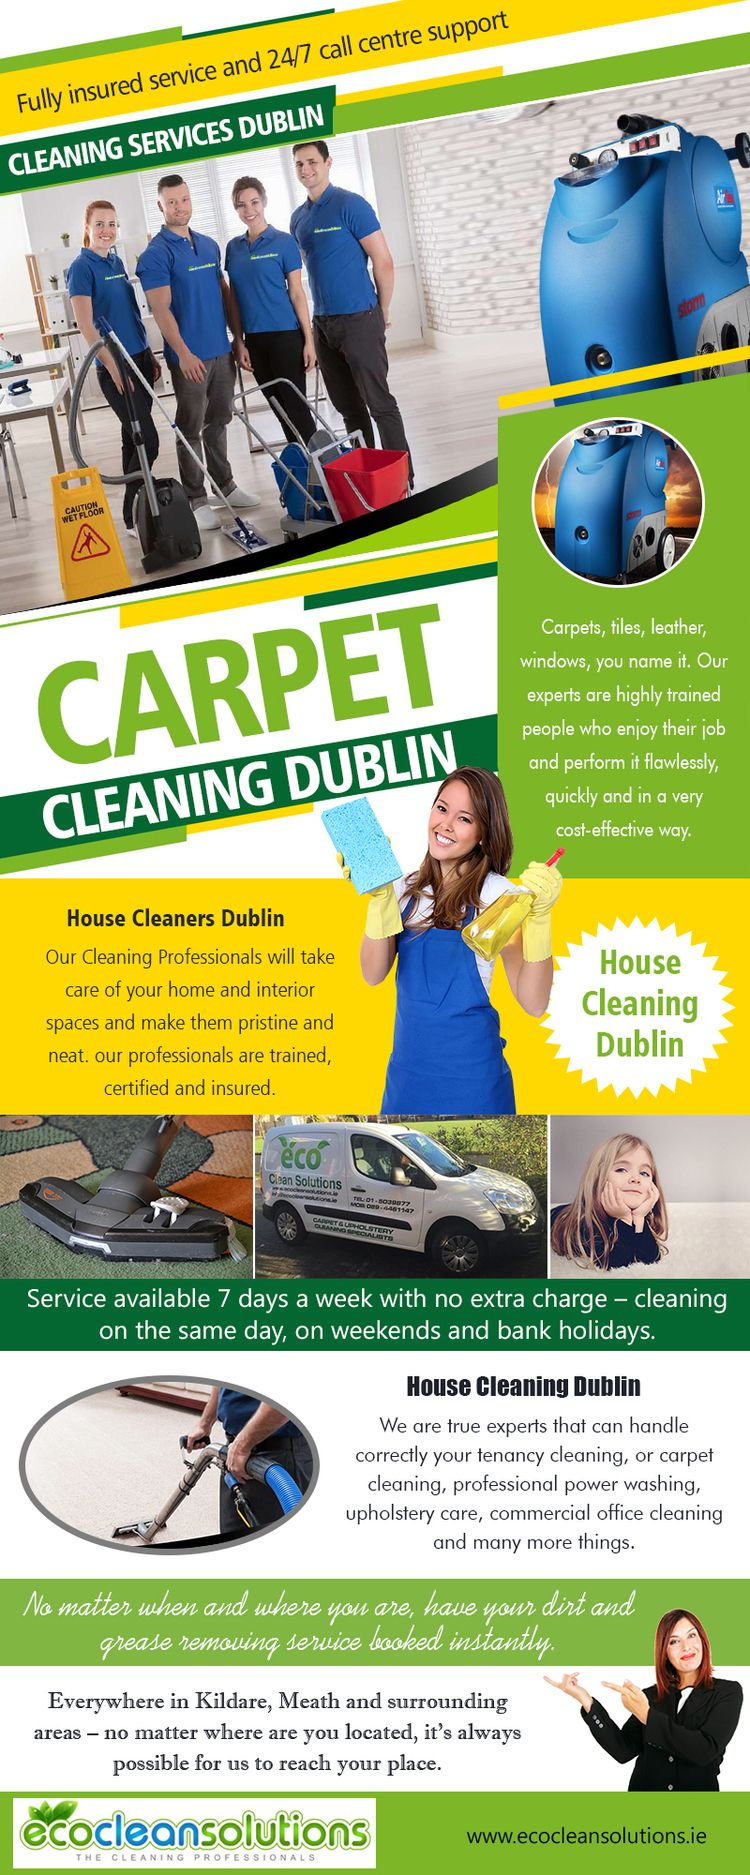 Carpet Cleaning Dublin prices f - carpetcleanings | ello